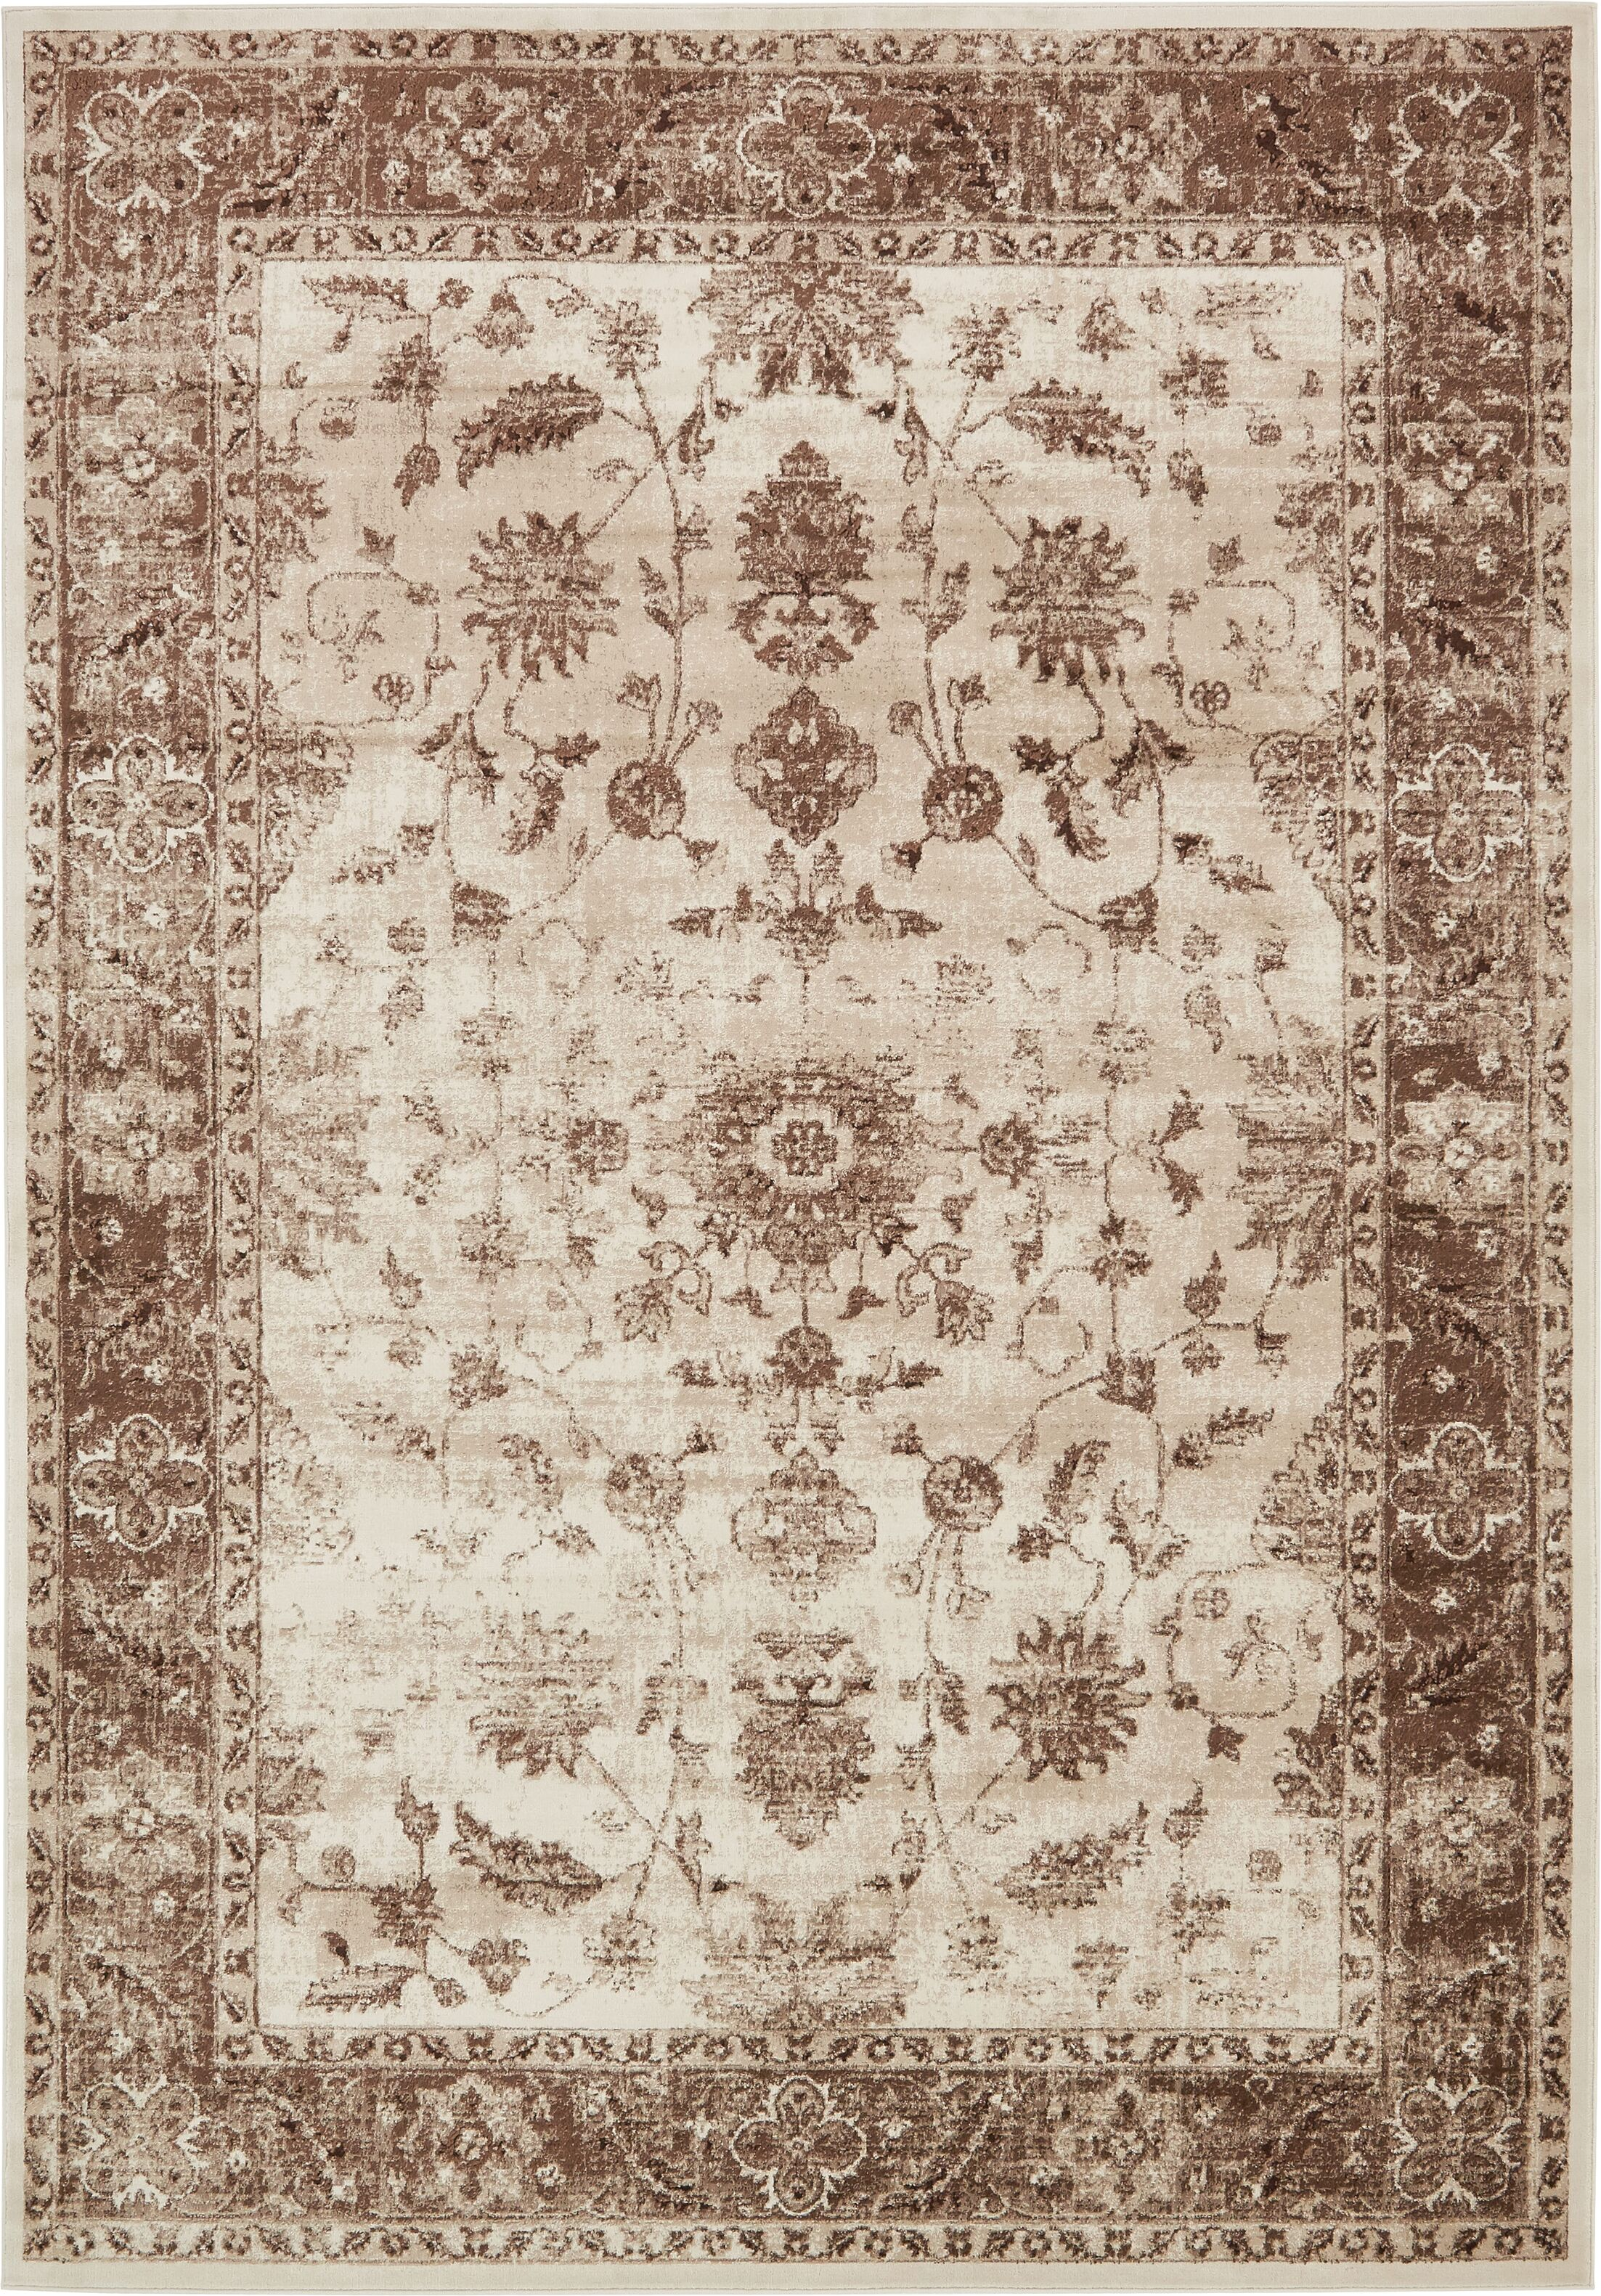 Mathieu Cream/Beige/Brown Area Rug Rug Size: Rectangle 8' x 11'6